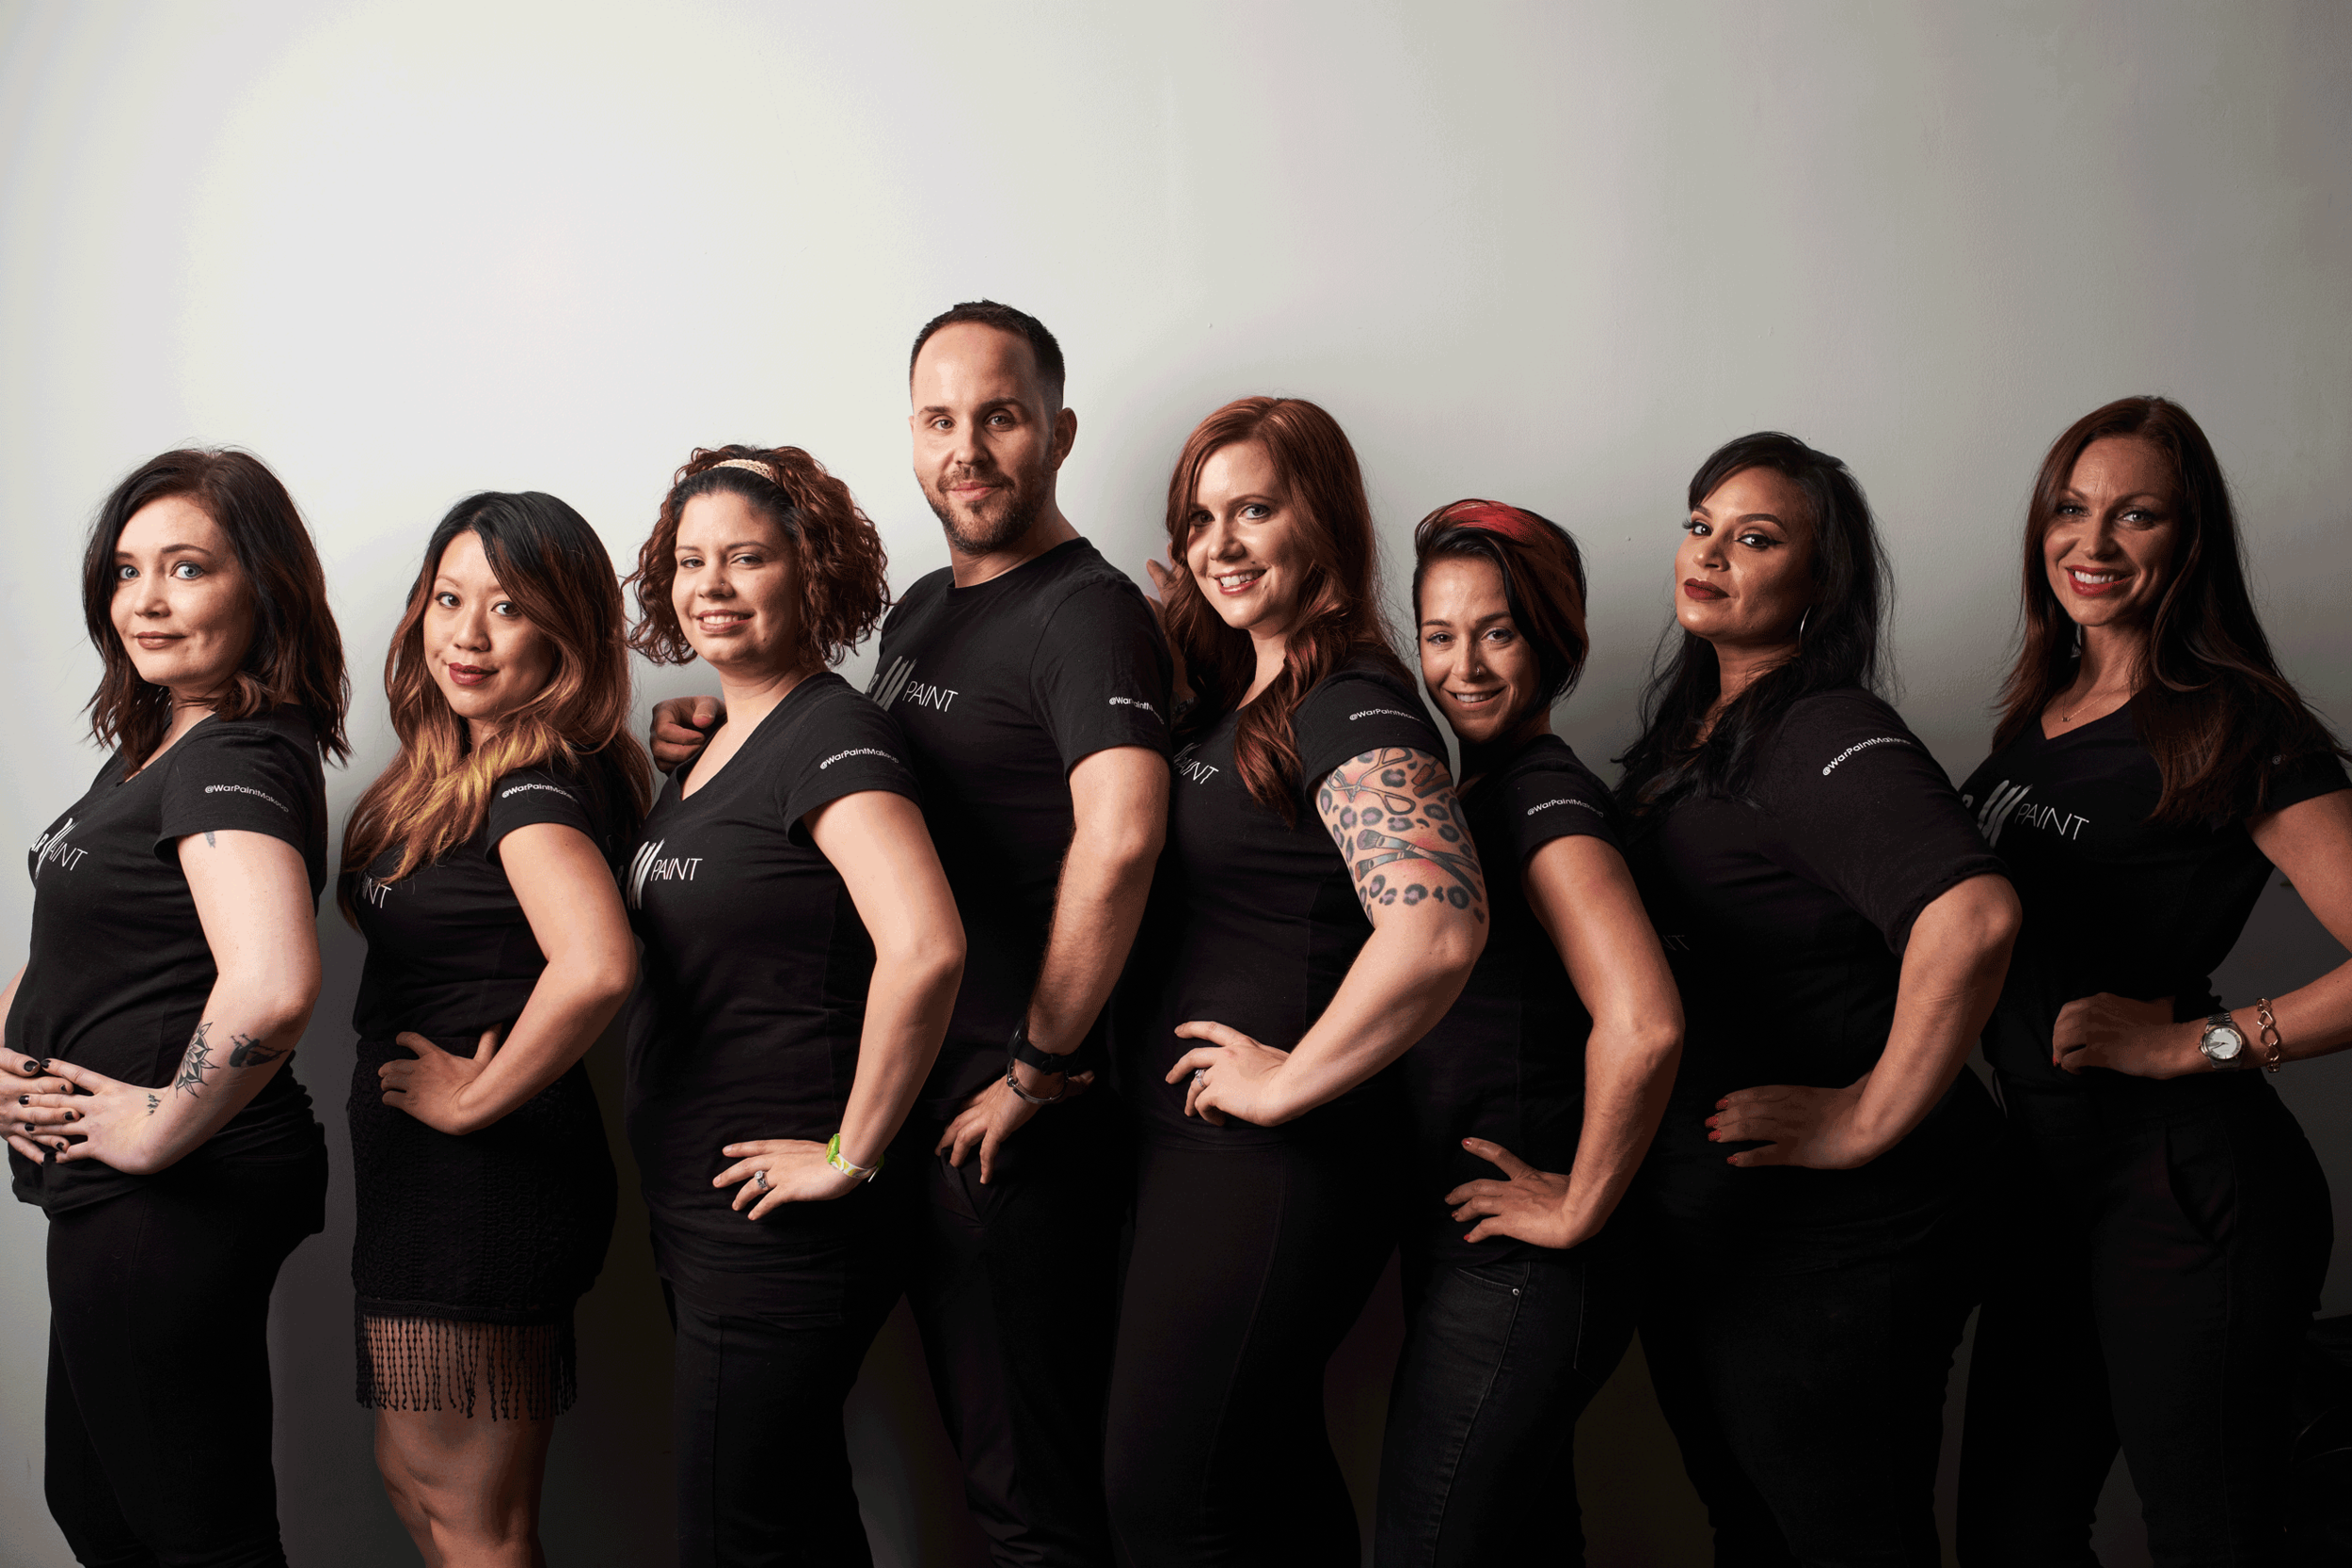 The FW 2016 Trend Collection Team.   From left to right: Hair Assistant Artisan Heidi, Makeup Assistant Artisan Malee,Hair Assistant Artisan Kristina,Artistic Director Benjamin Rodich, Creative Director Jessica Mae, Hair Assistant Artisan Katie, Makeup Assistant Artisan Priscilla (NYC), Makeup Assistant Artisan Alison Joy.